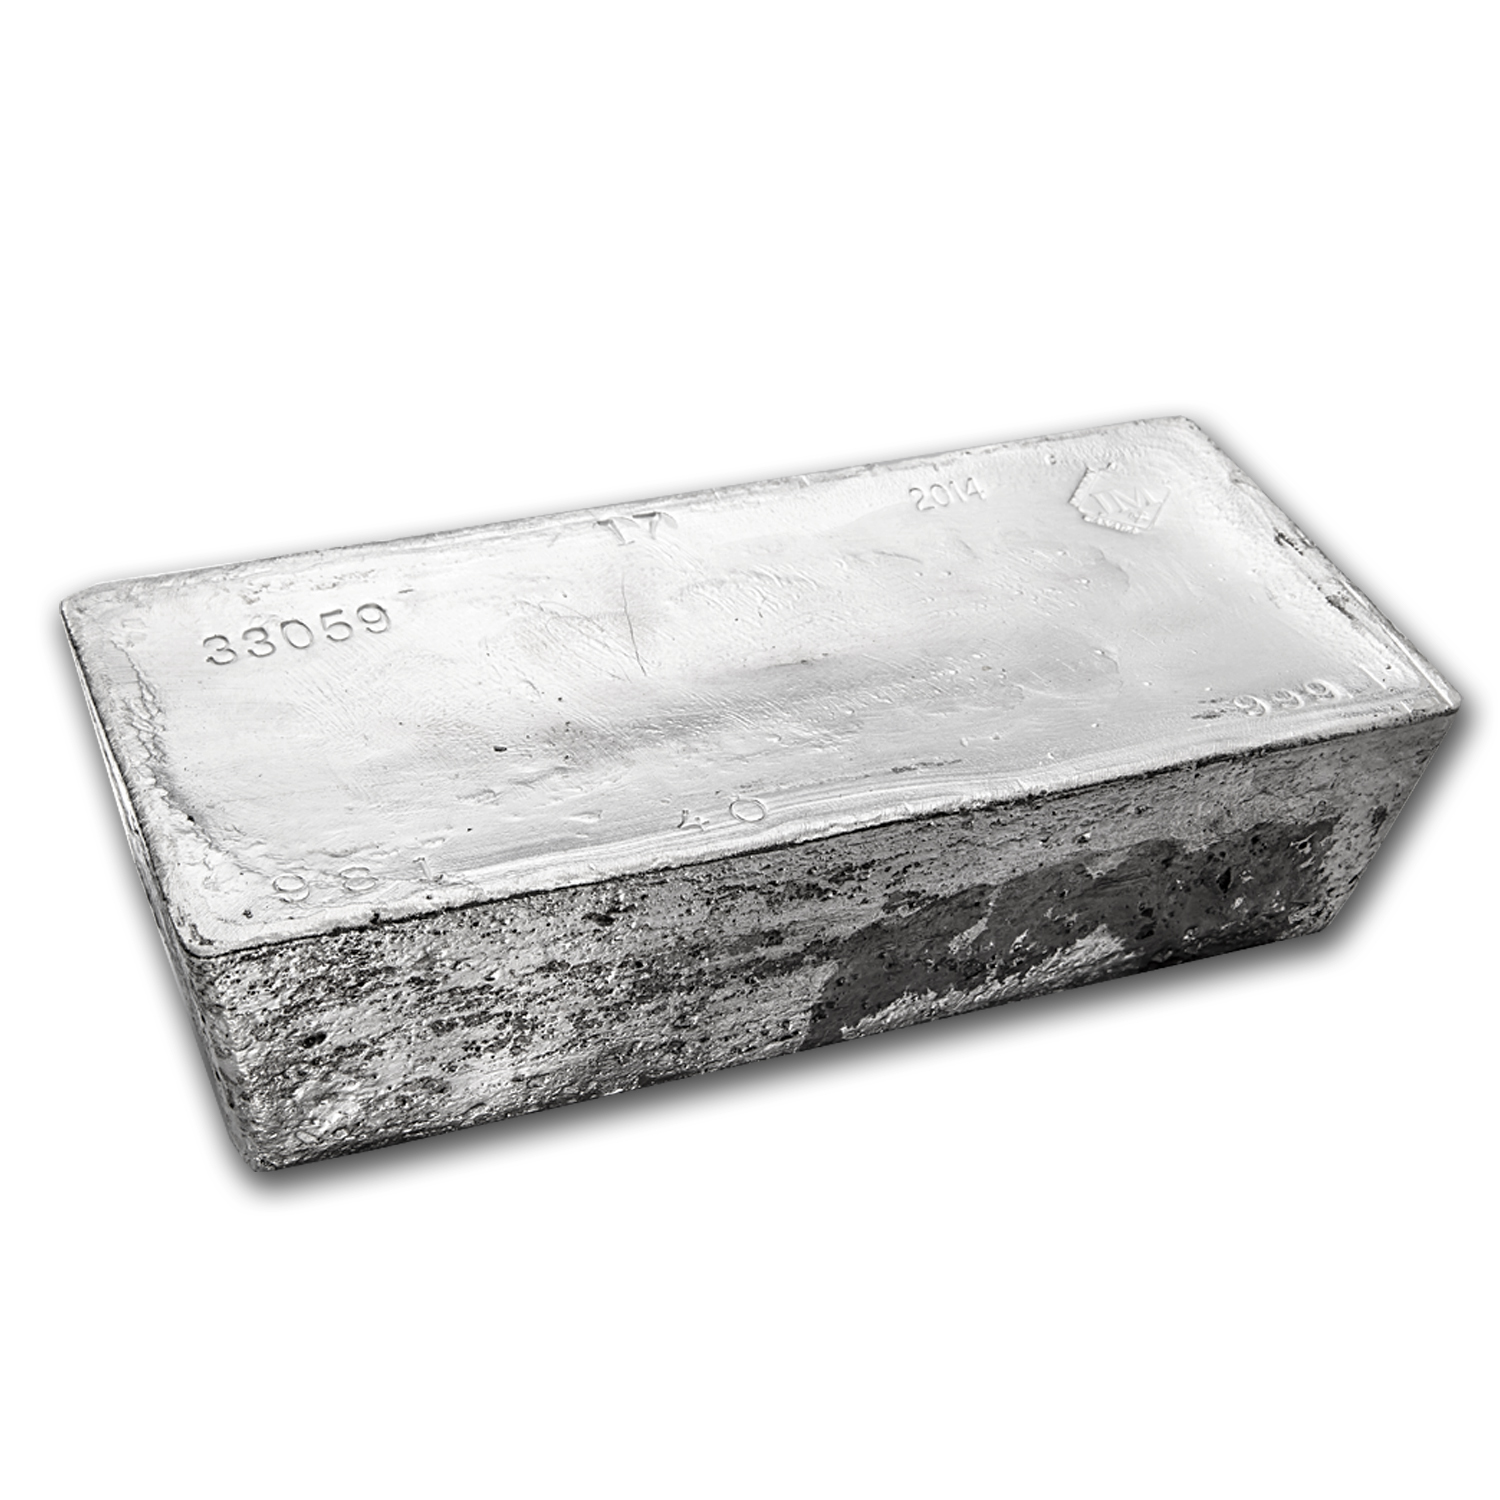 997.20 oz Silver Bars - Johnson Matthey